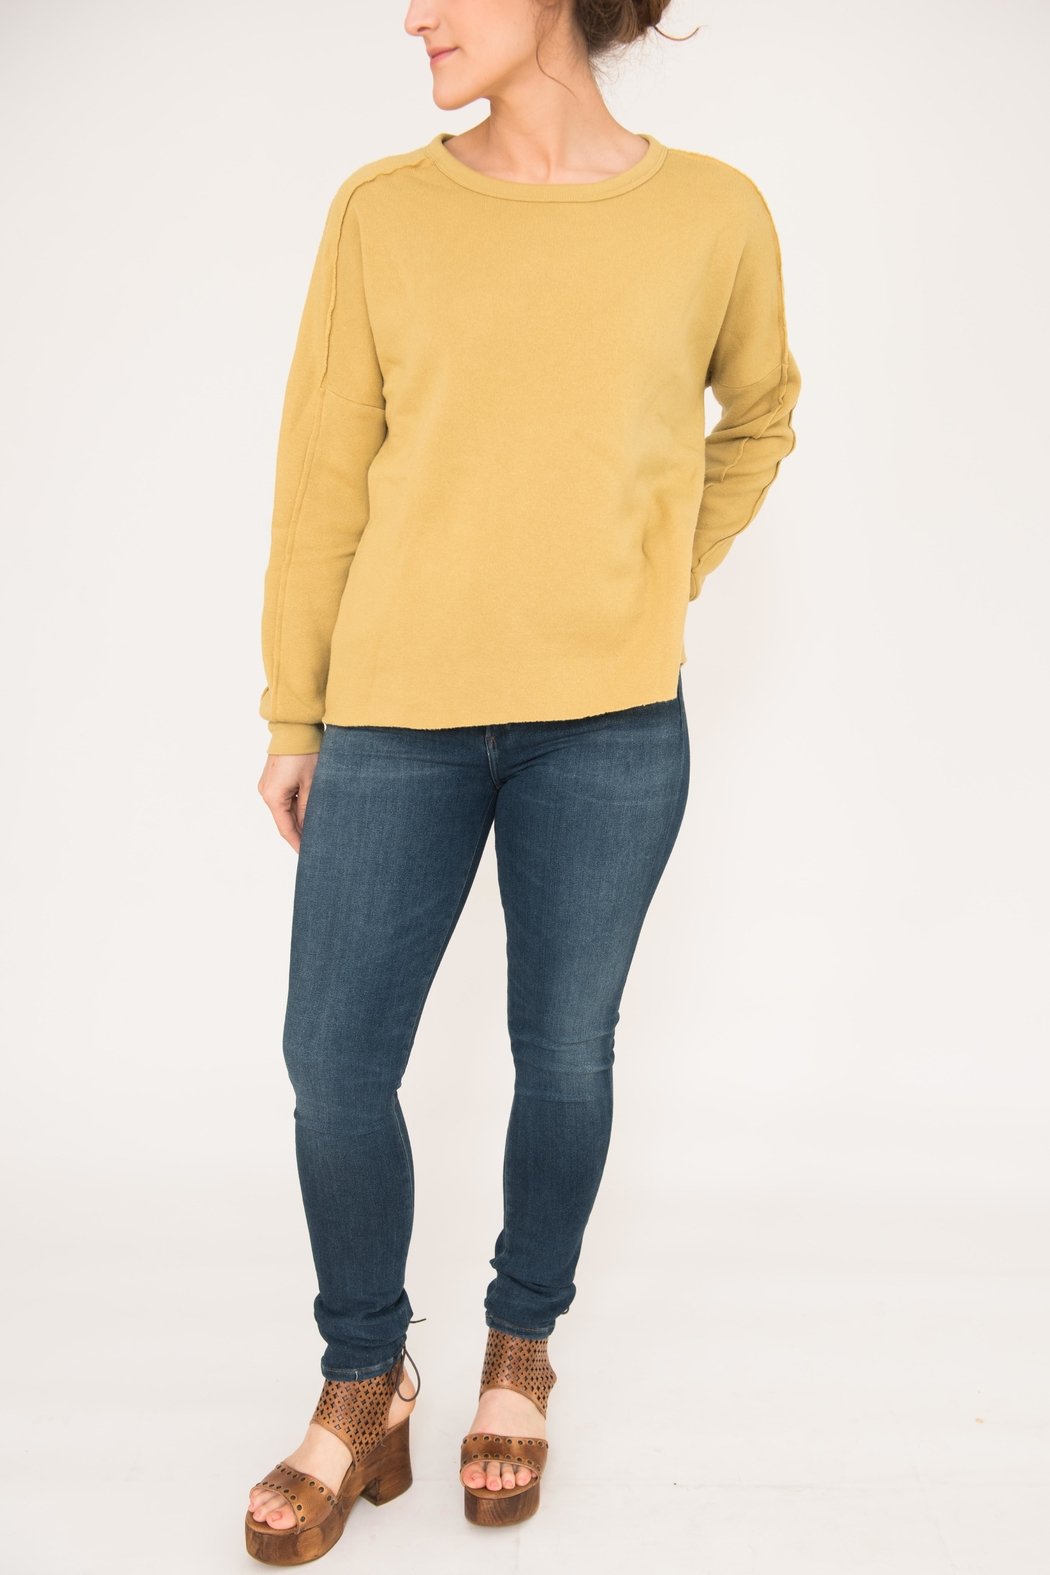 Project Social T Paw Paneled Sweatshirt - Front Cropped Image